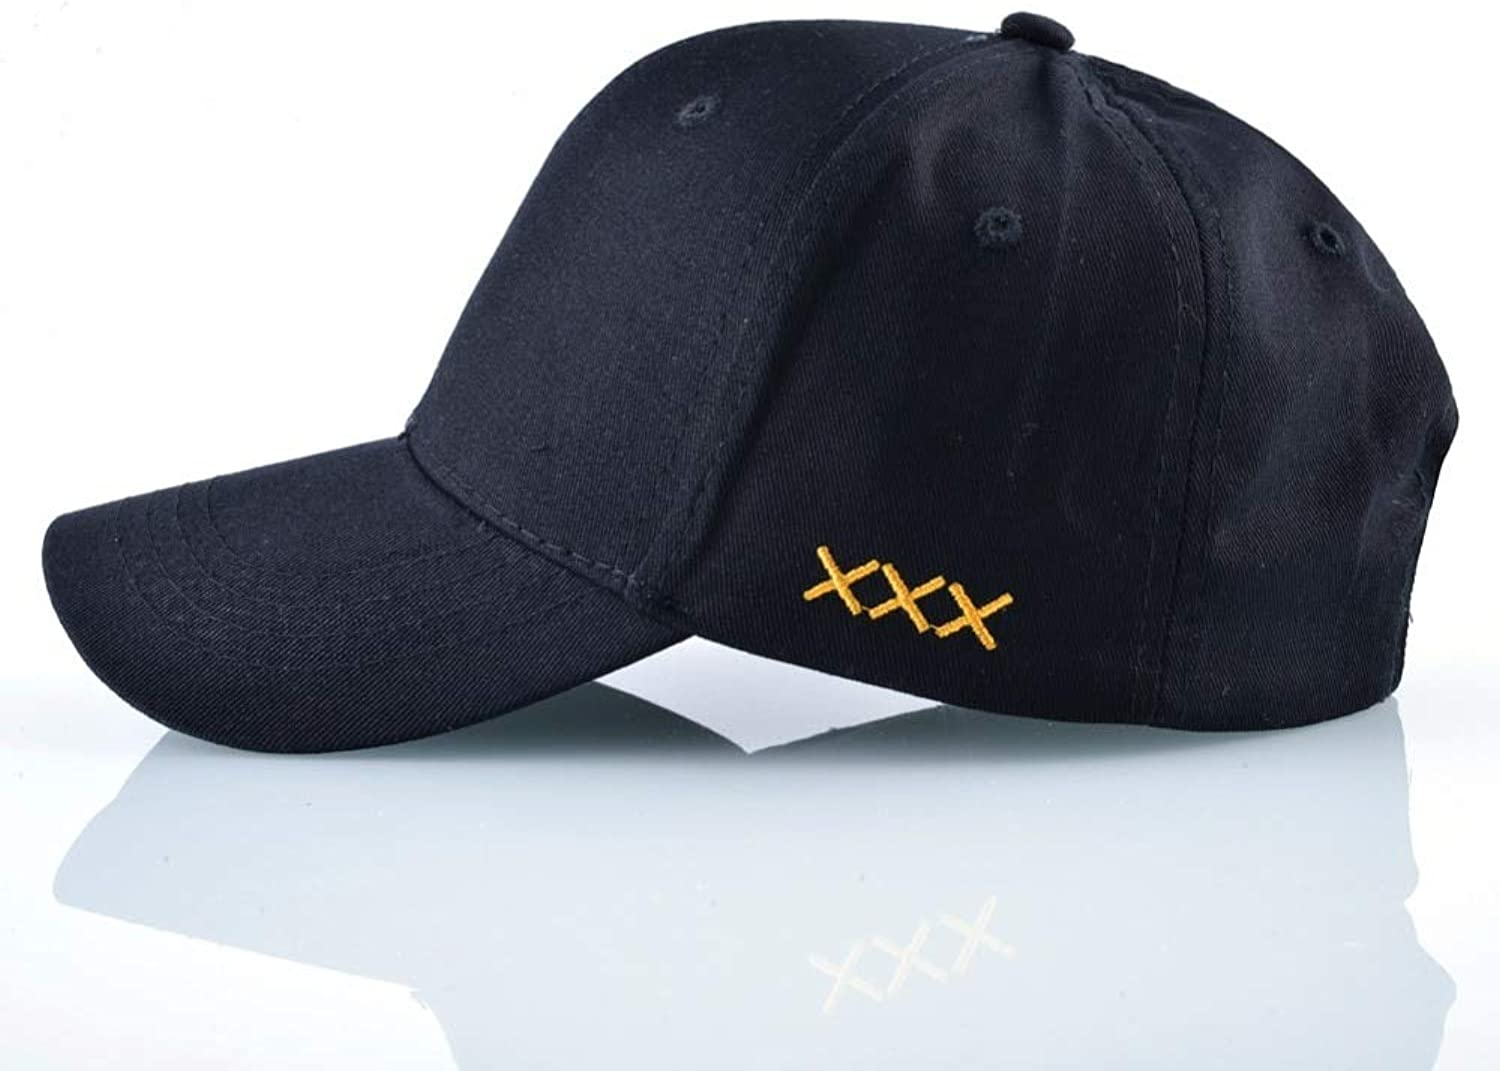 AAMOUSE Solid Cotton Dad Hats for Men and Women Baseball Cap Sample Outdoor Casual Hip Hop Black Hats